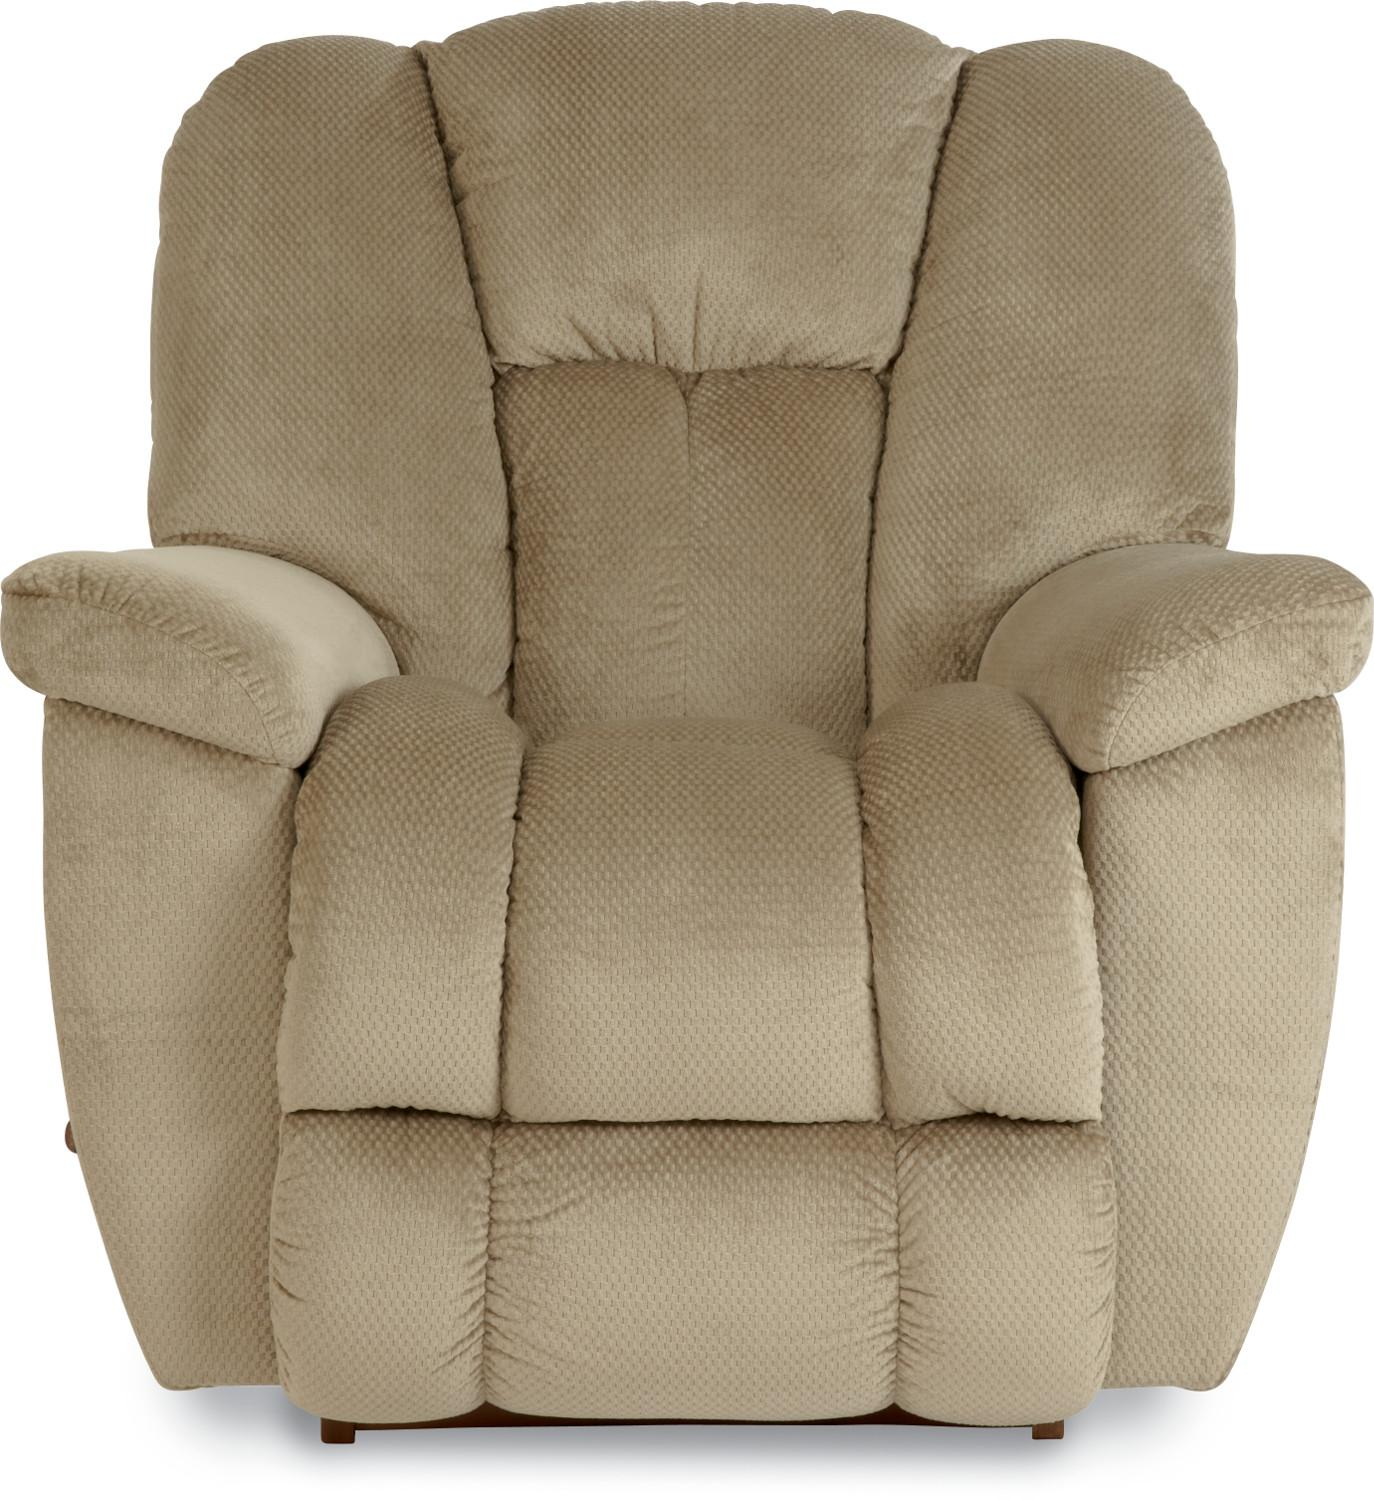 Maverick Reclina-Way Recliner by La-Z-Boy at VanDrie Home Furnishings